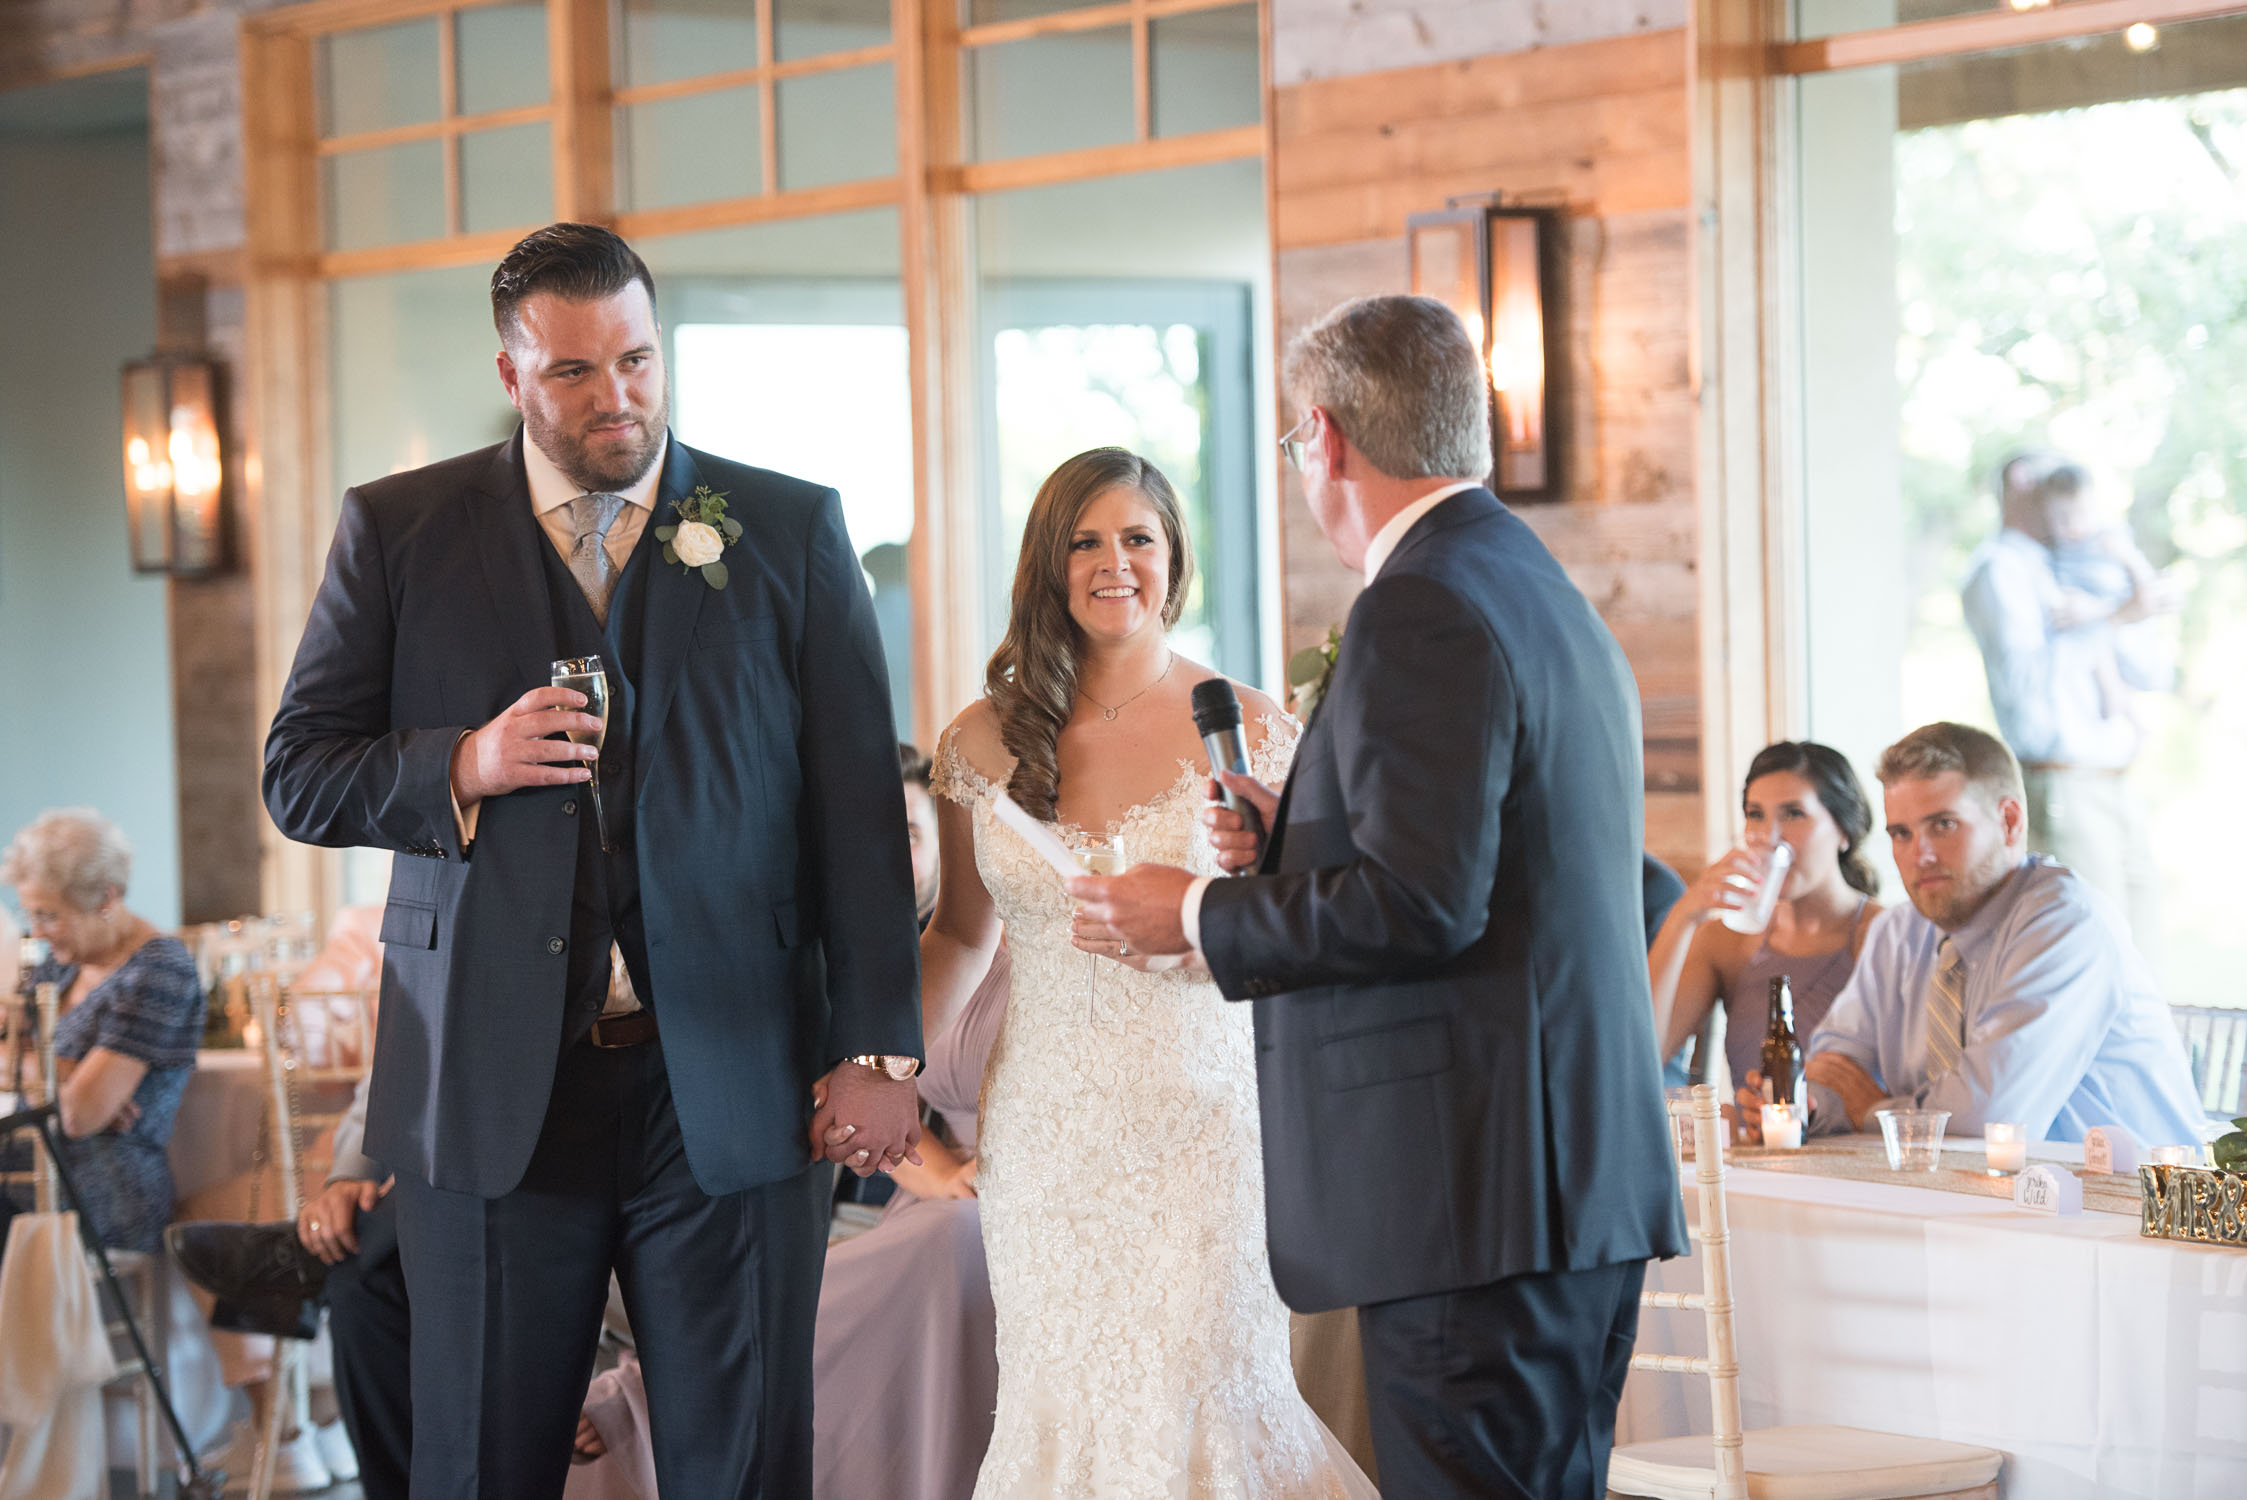 Hinton Wedding at Canyonwood Ridge Dripping Springs Texas Wedding Photography-135.jpg